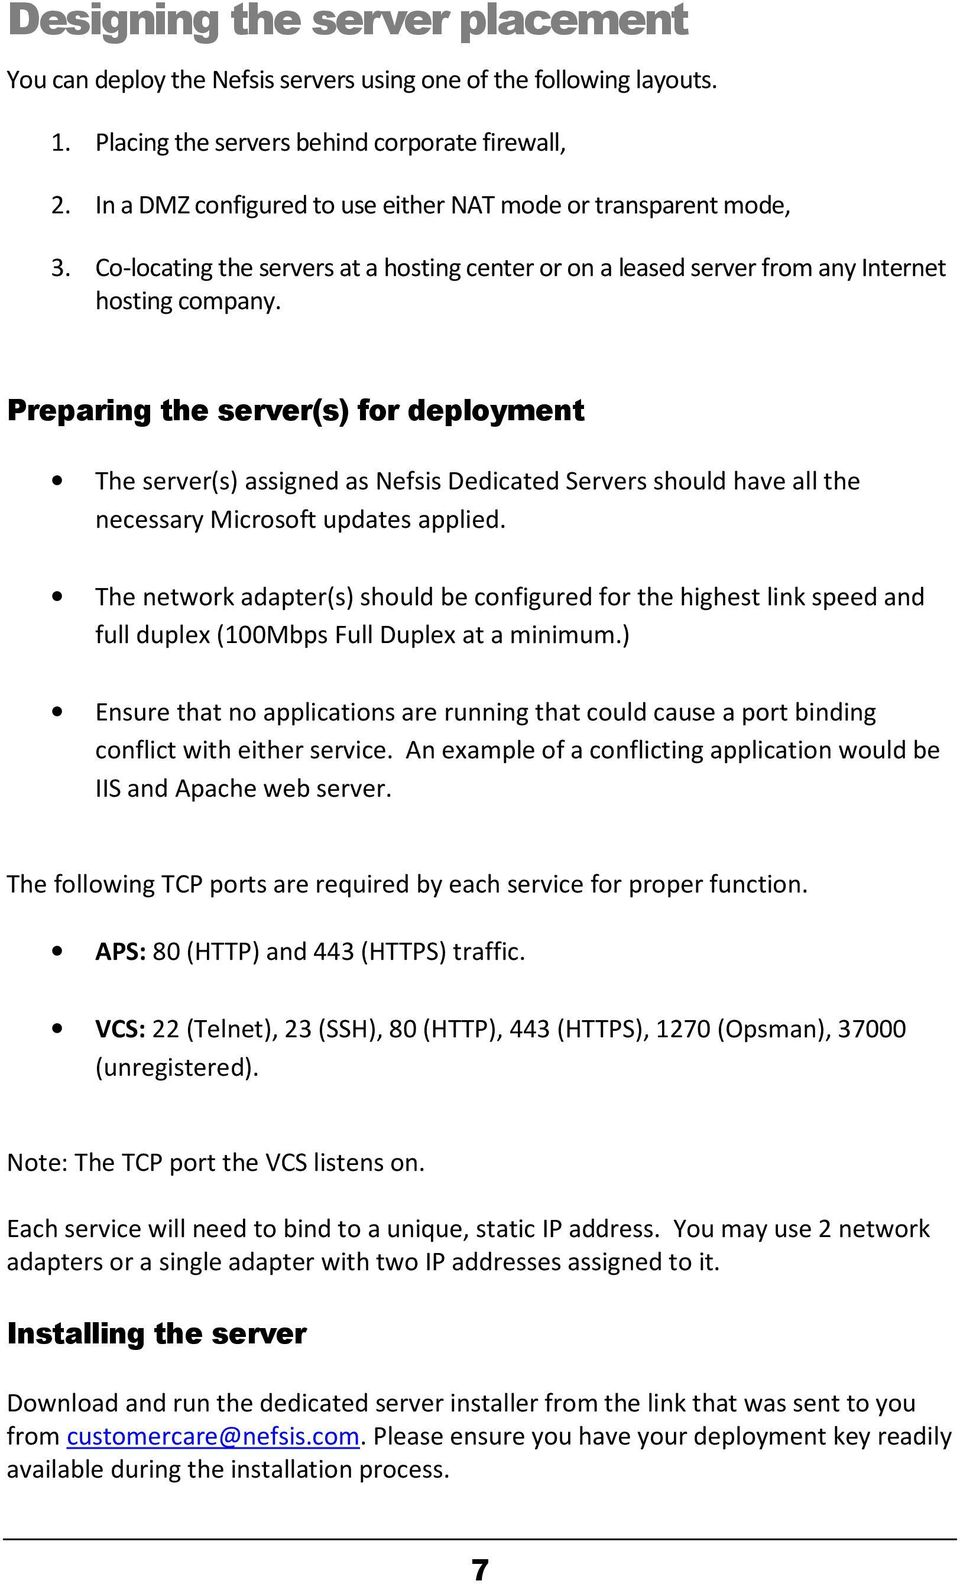 Preparing the server(s) for deployment The server(s) assigned as Nefsis Dedicated Servers should have all the necessary Microsoft updates applied.